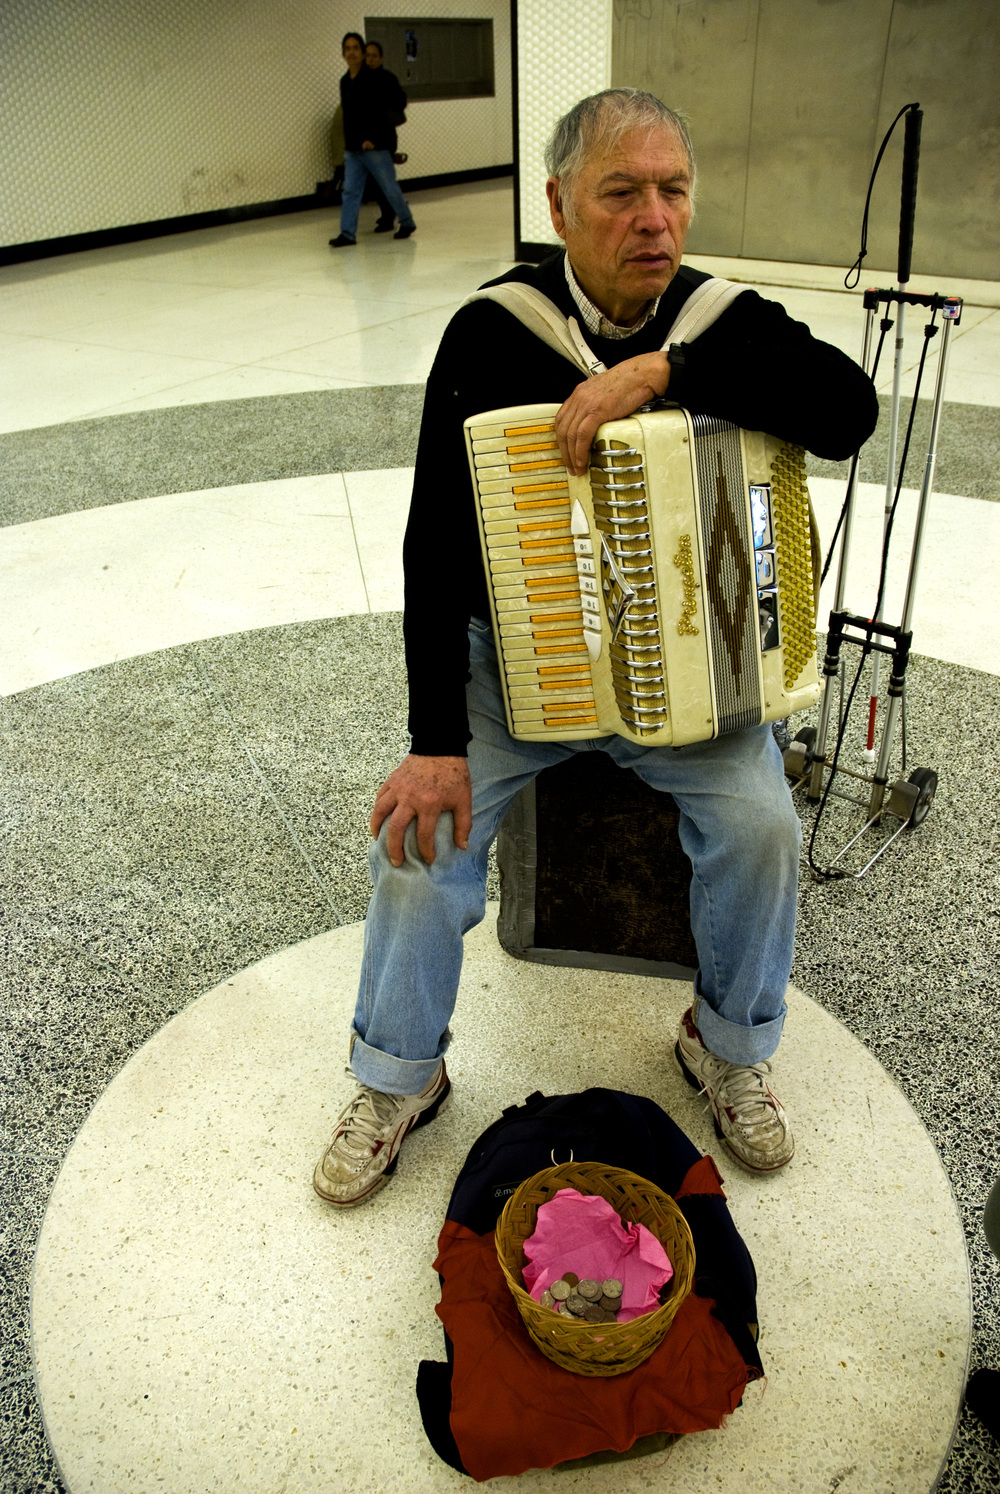 Louis Lopez is blind, but that didn't stop him from learning the accordion. He moved from Chicago to San Francisco in the 70s, and plays to the multitudes of commuters who wind their way through the Powell St. BART station every day.